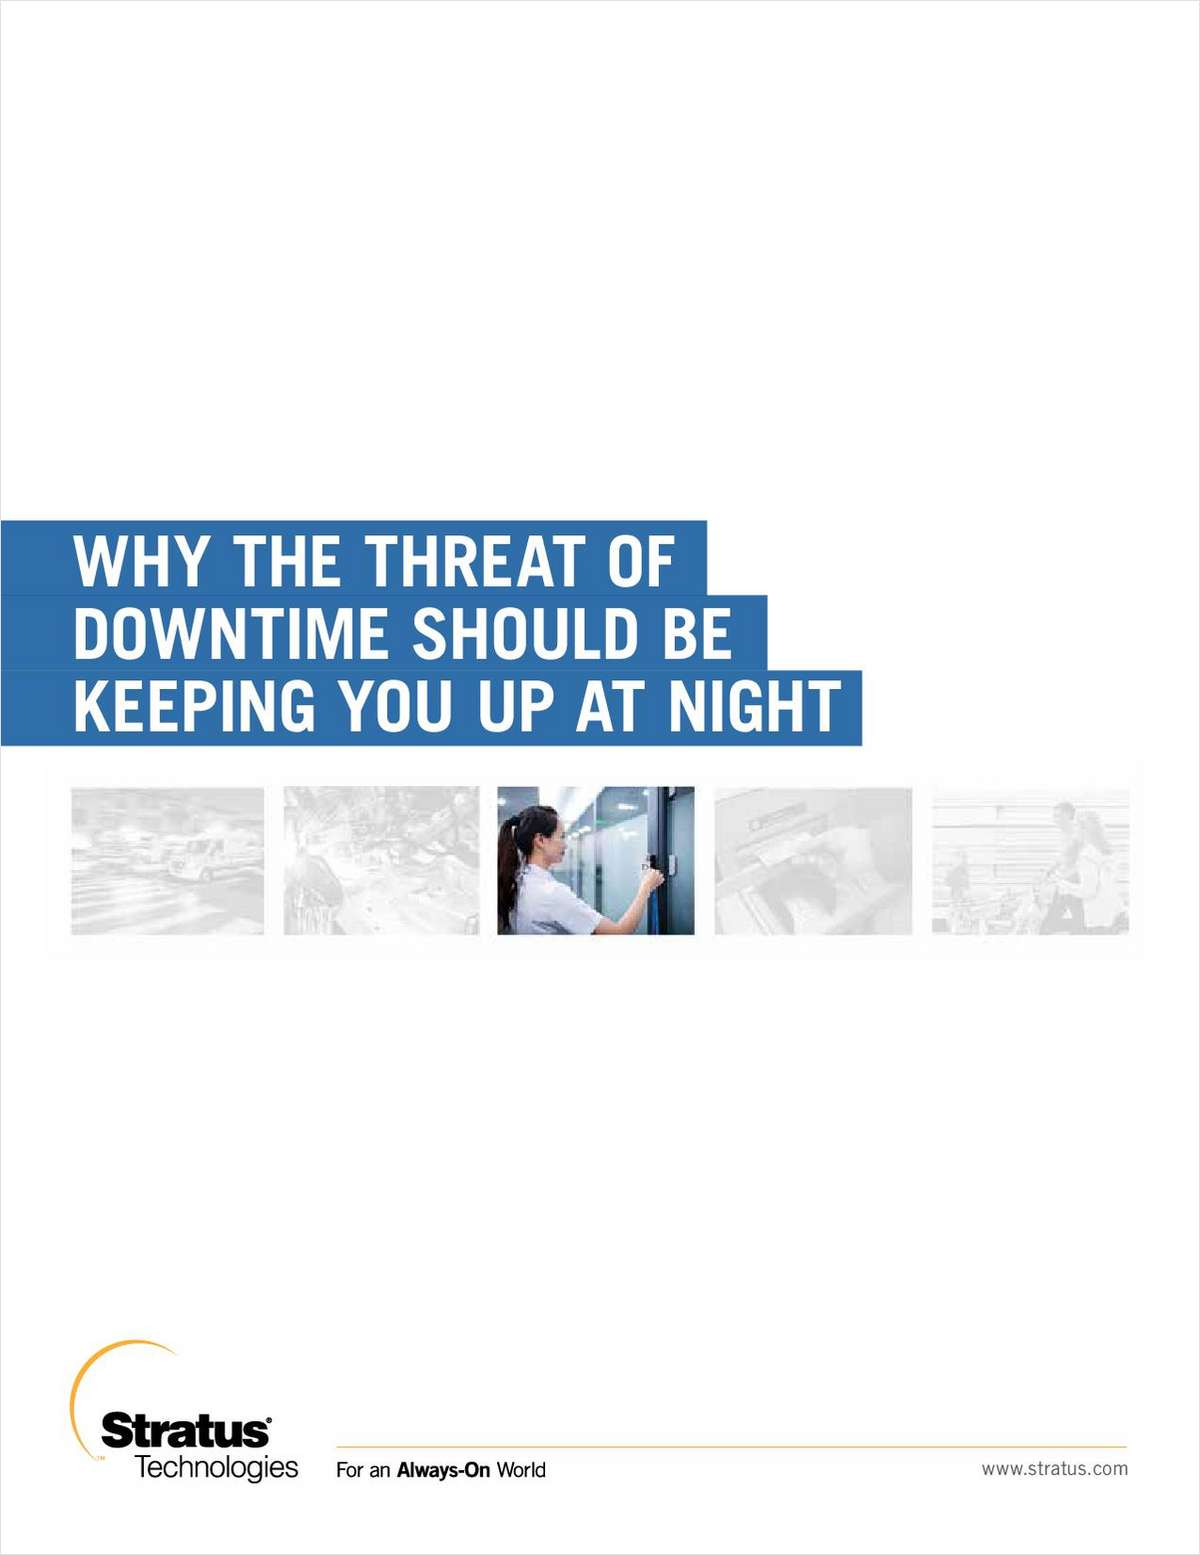 Why the Threat of Downtime Should Be Keeping You Up at Night